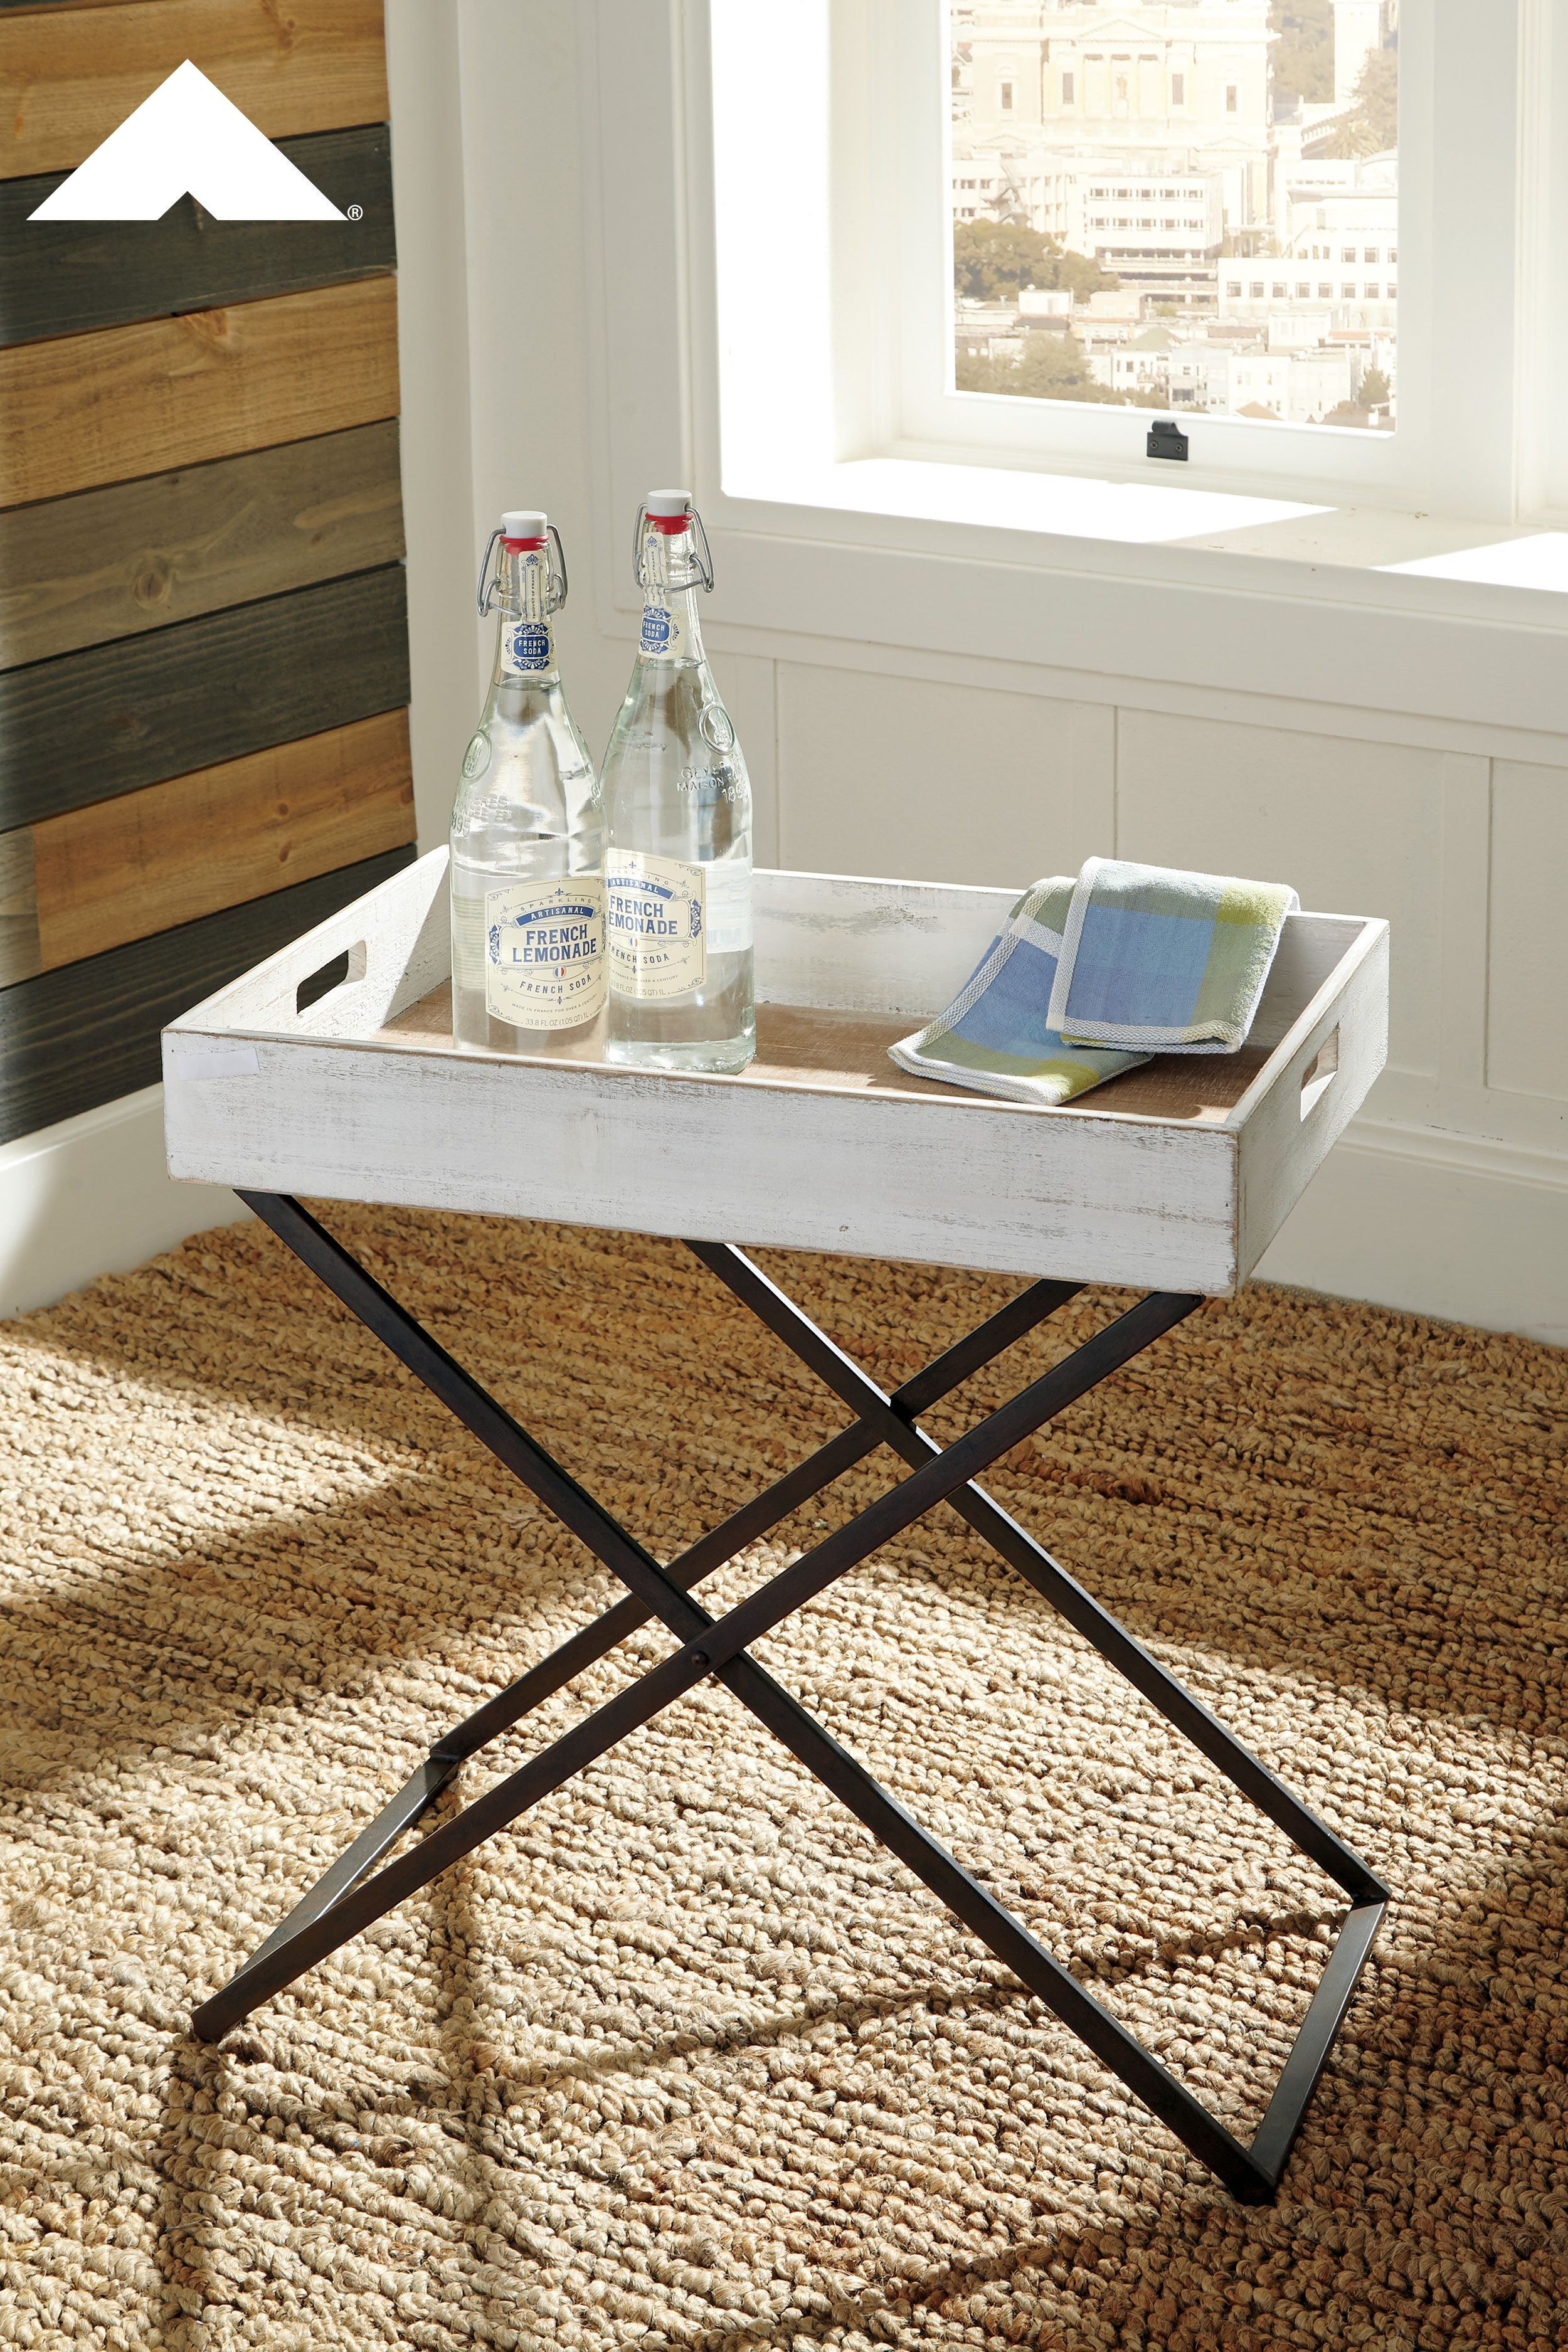 janfield summertime accent table ashley furniture tables ashleyfurniture homedecor homedecorideas small white round bedside inexpensive end for living room champagne cooler dale